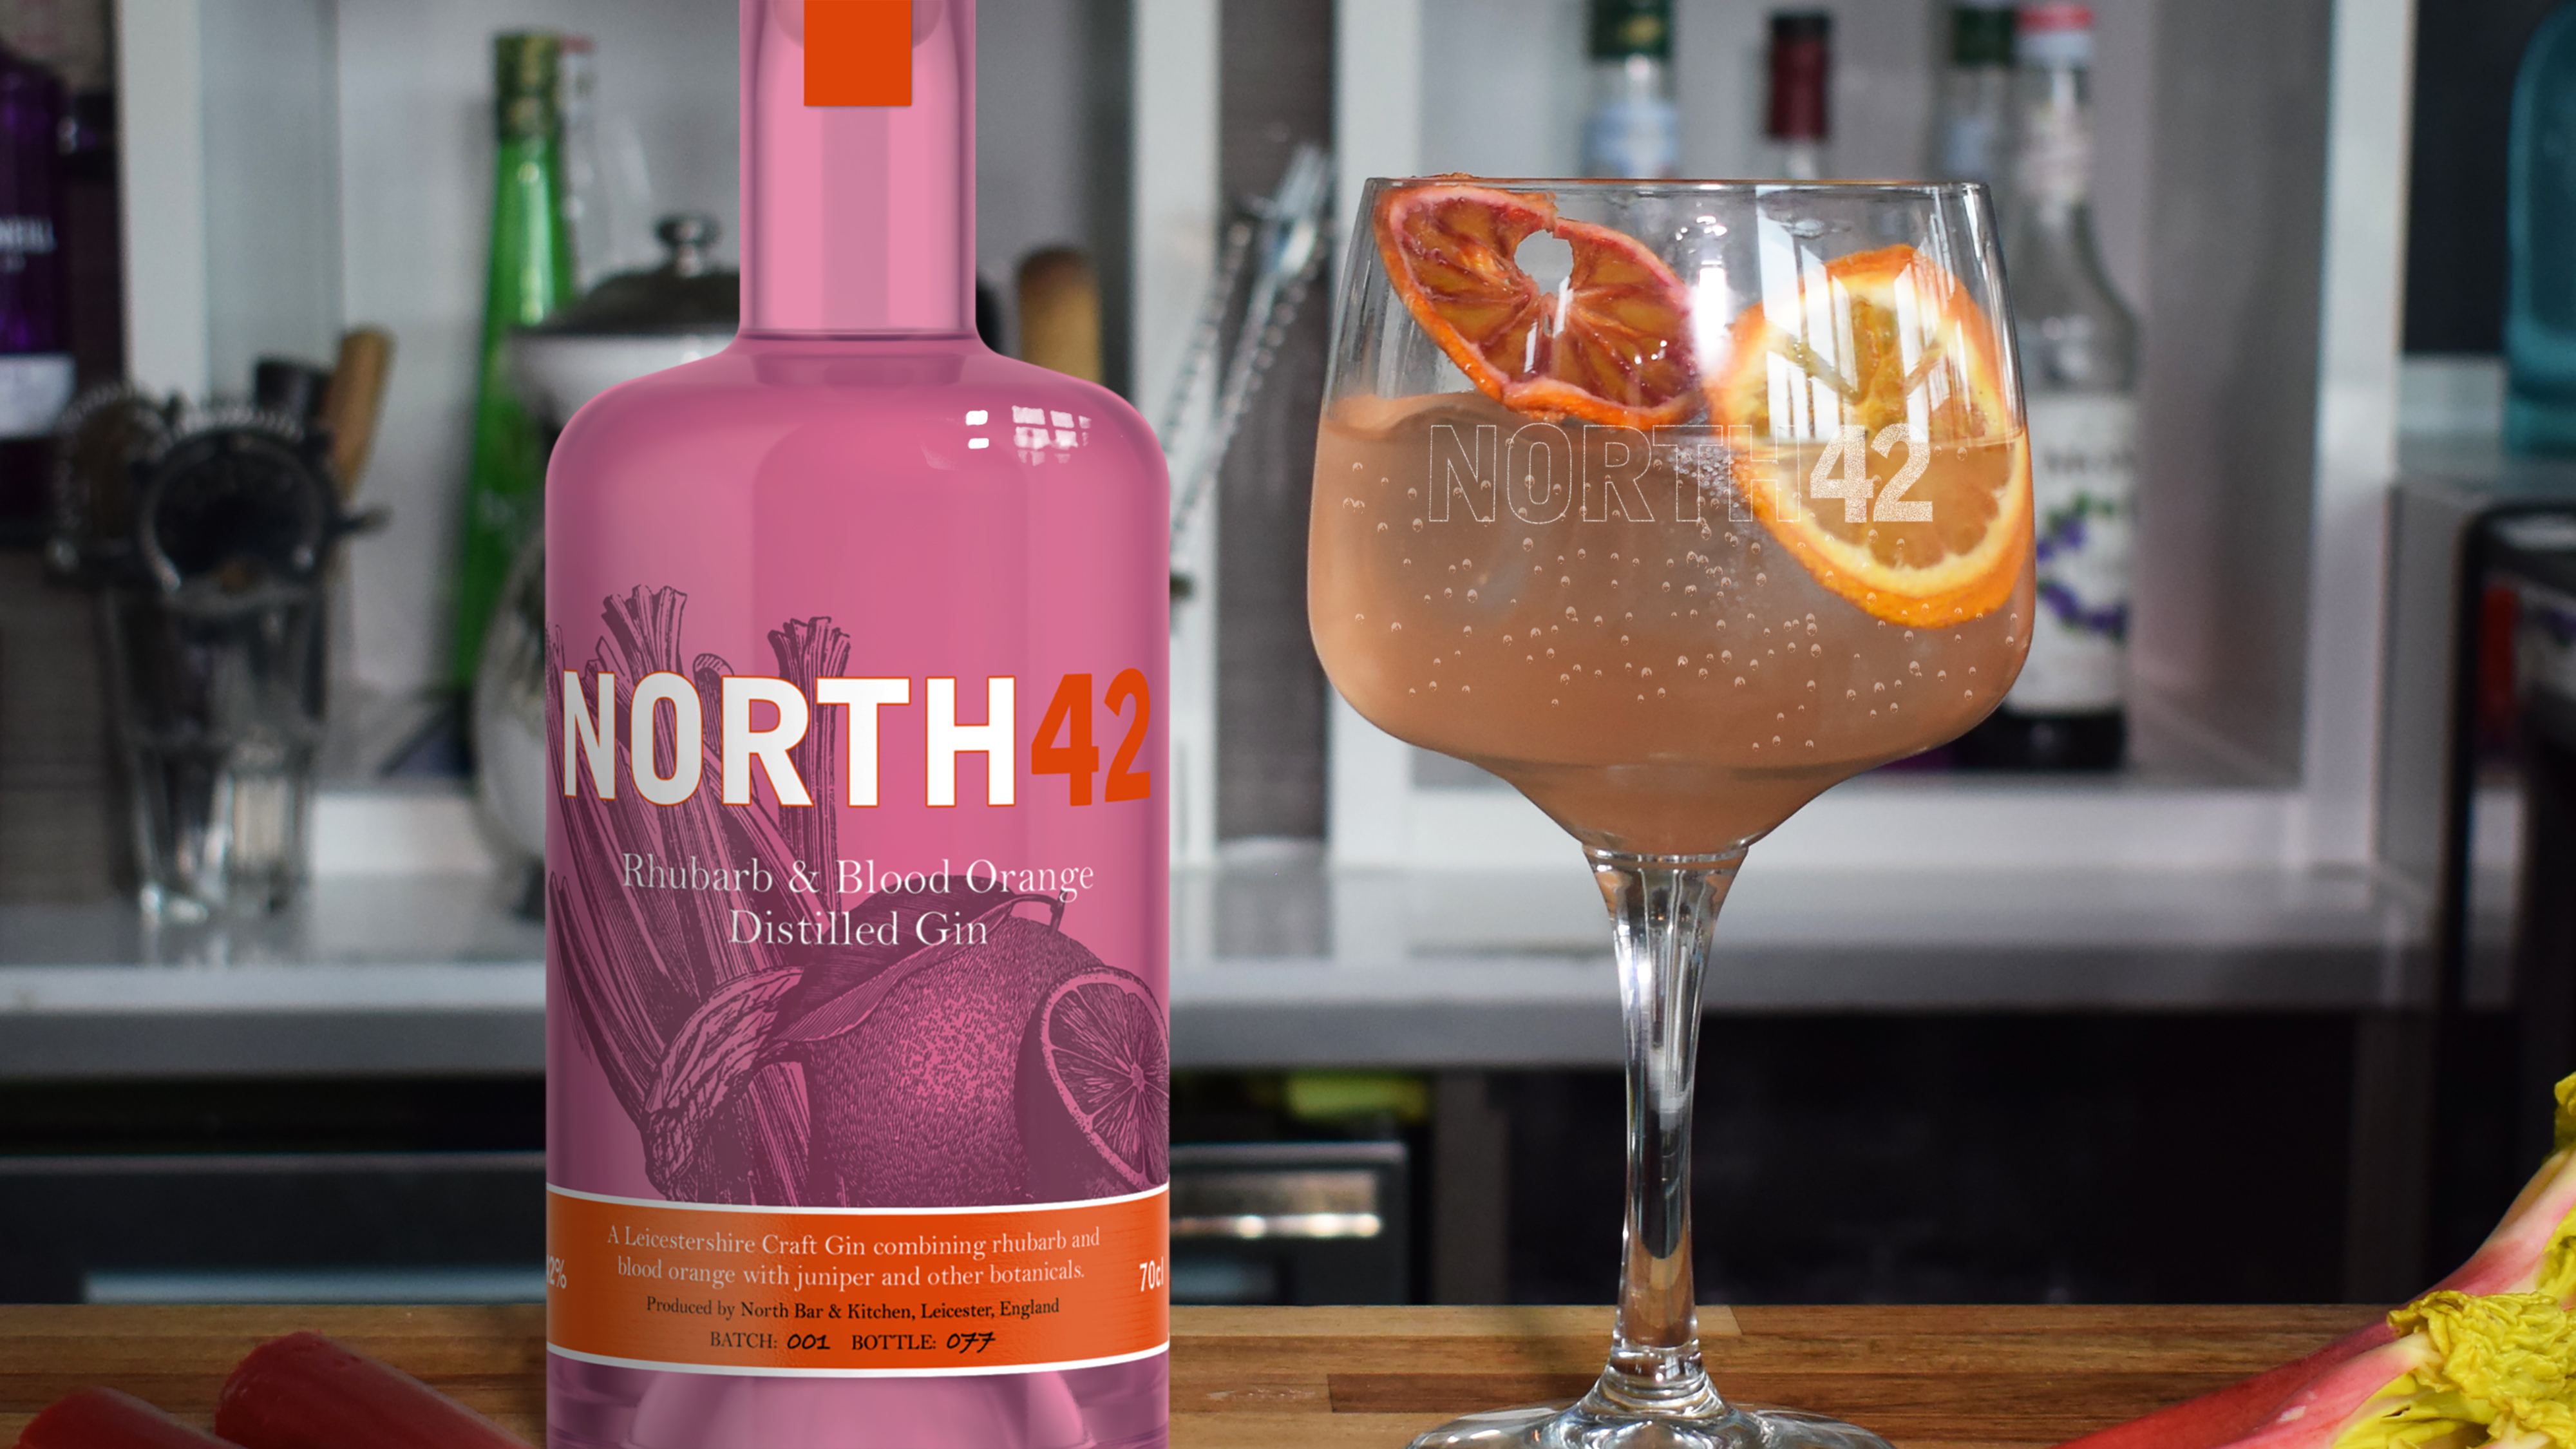 north 42 gin